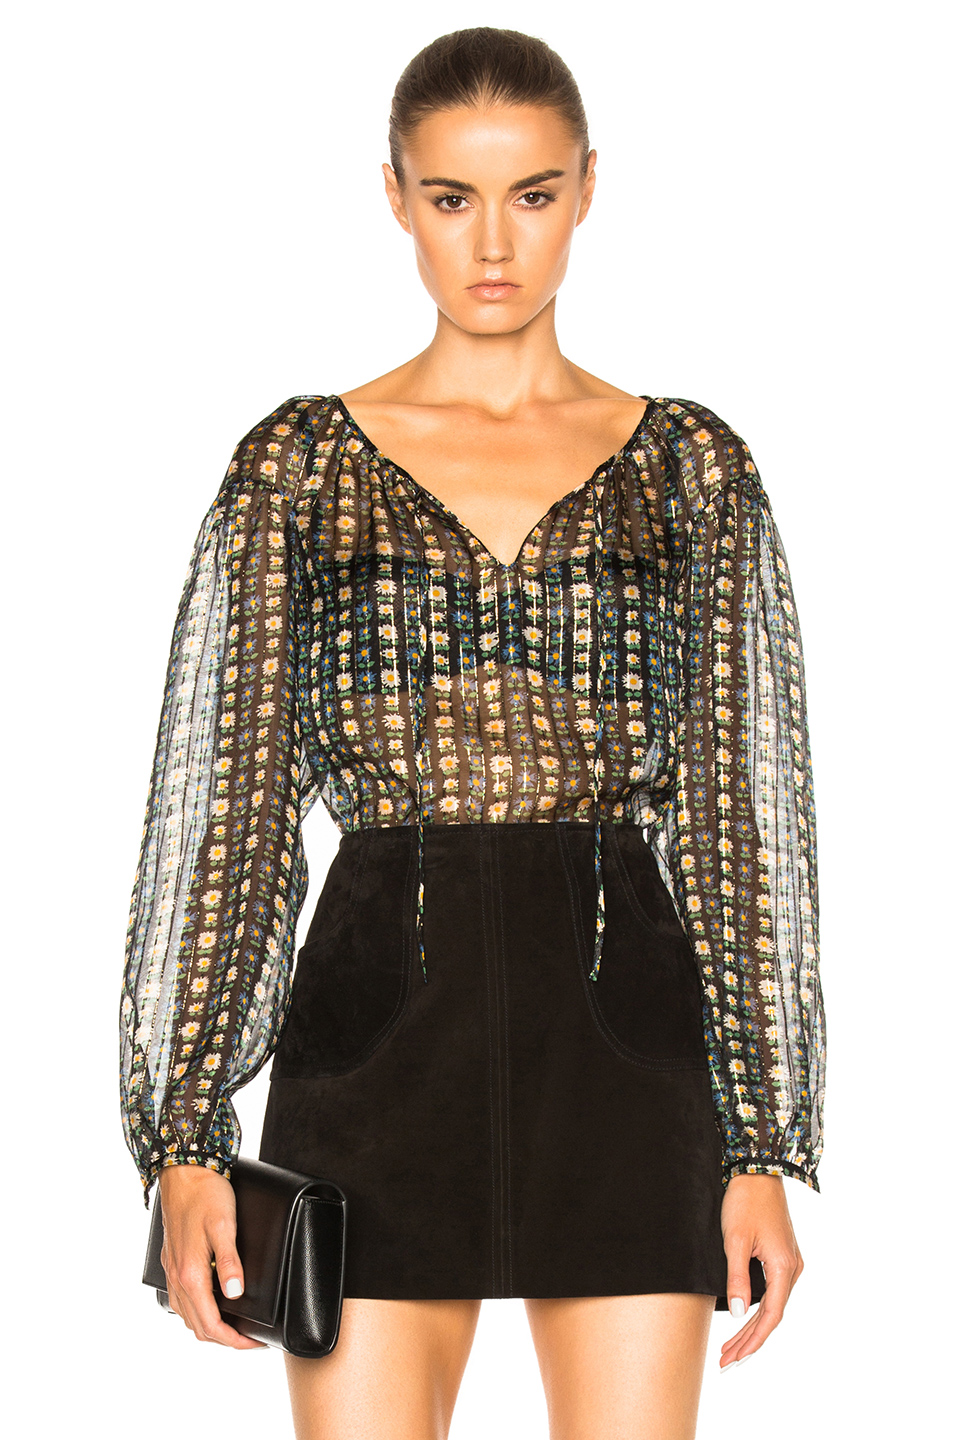 Saint Laurent Blouson Blouse in Black,Floral